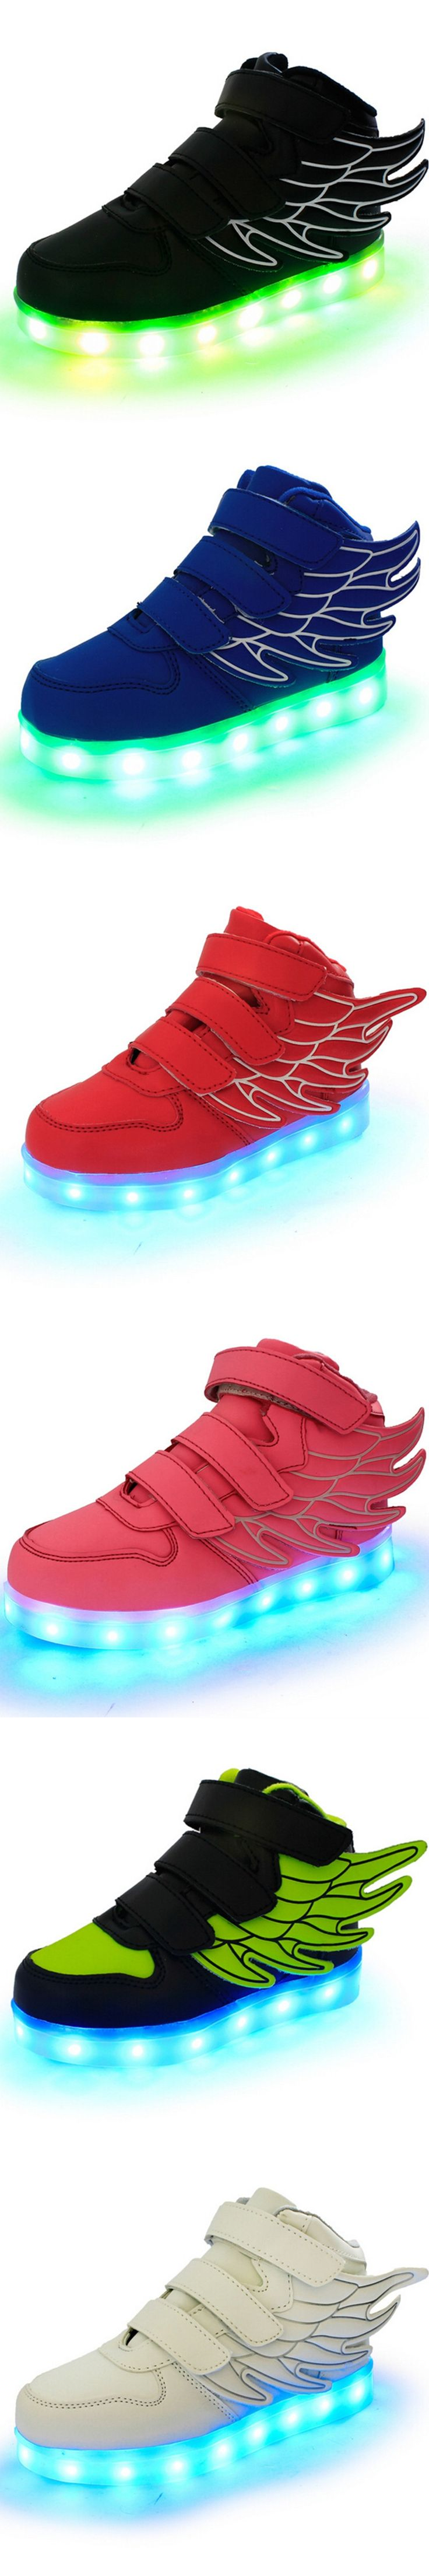 2016 Led Schoenen Kids Basket Chaussure Lumineuse Enfant Garcon Casual Boys Lighting Girls Fille Children Shoes With Light Up